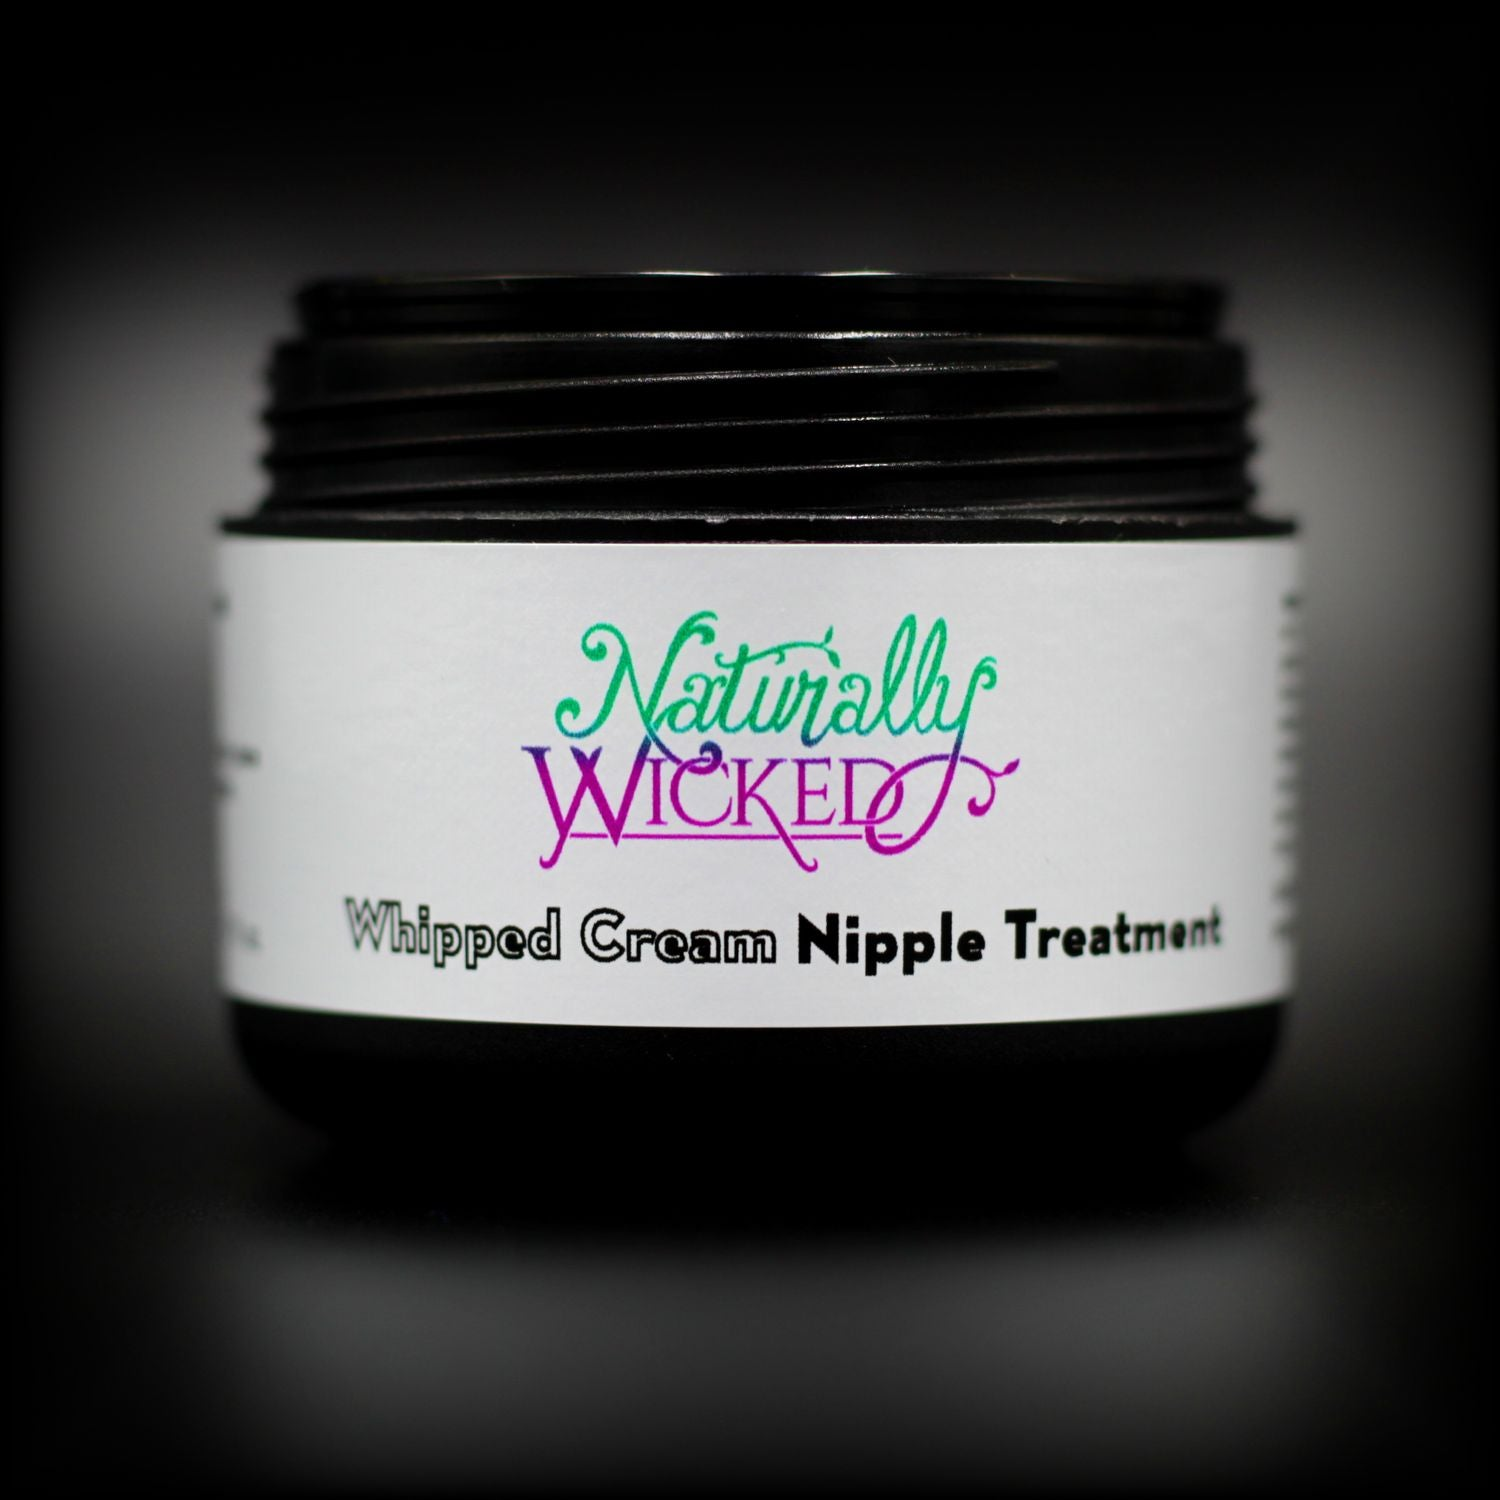 Naturally Wicked Whipped Cream Nipple Treatment Container Without Lid Exposing Seal & Screw Connection